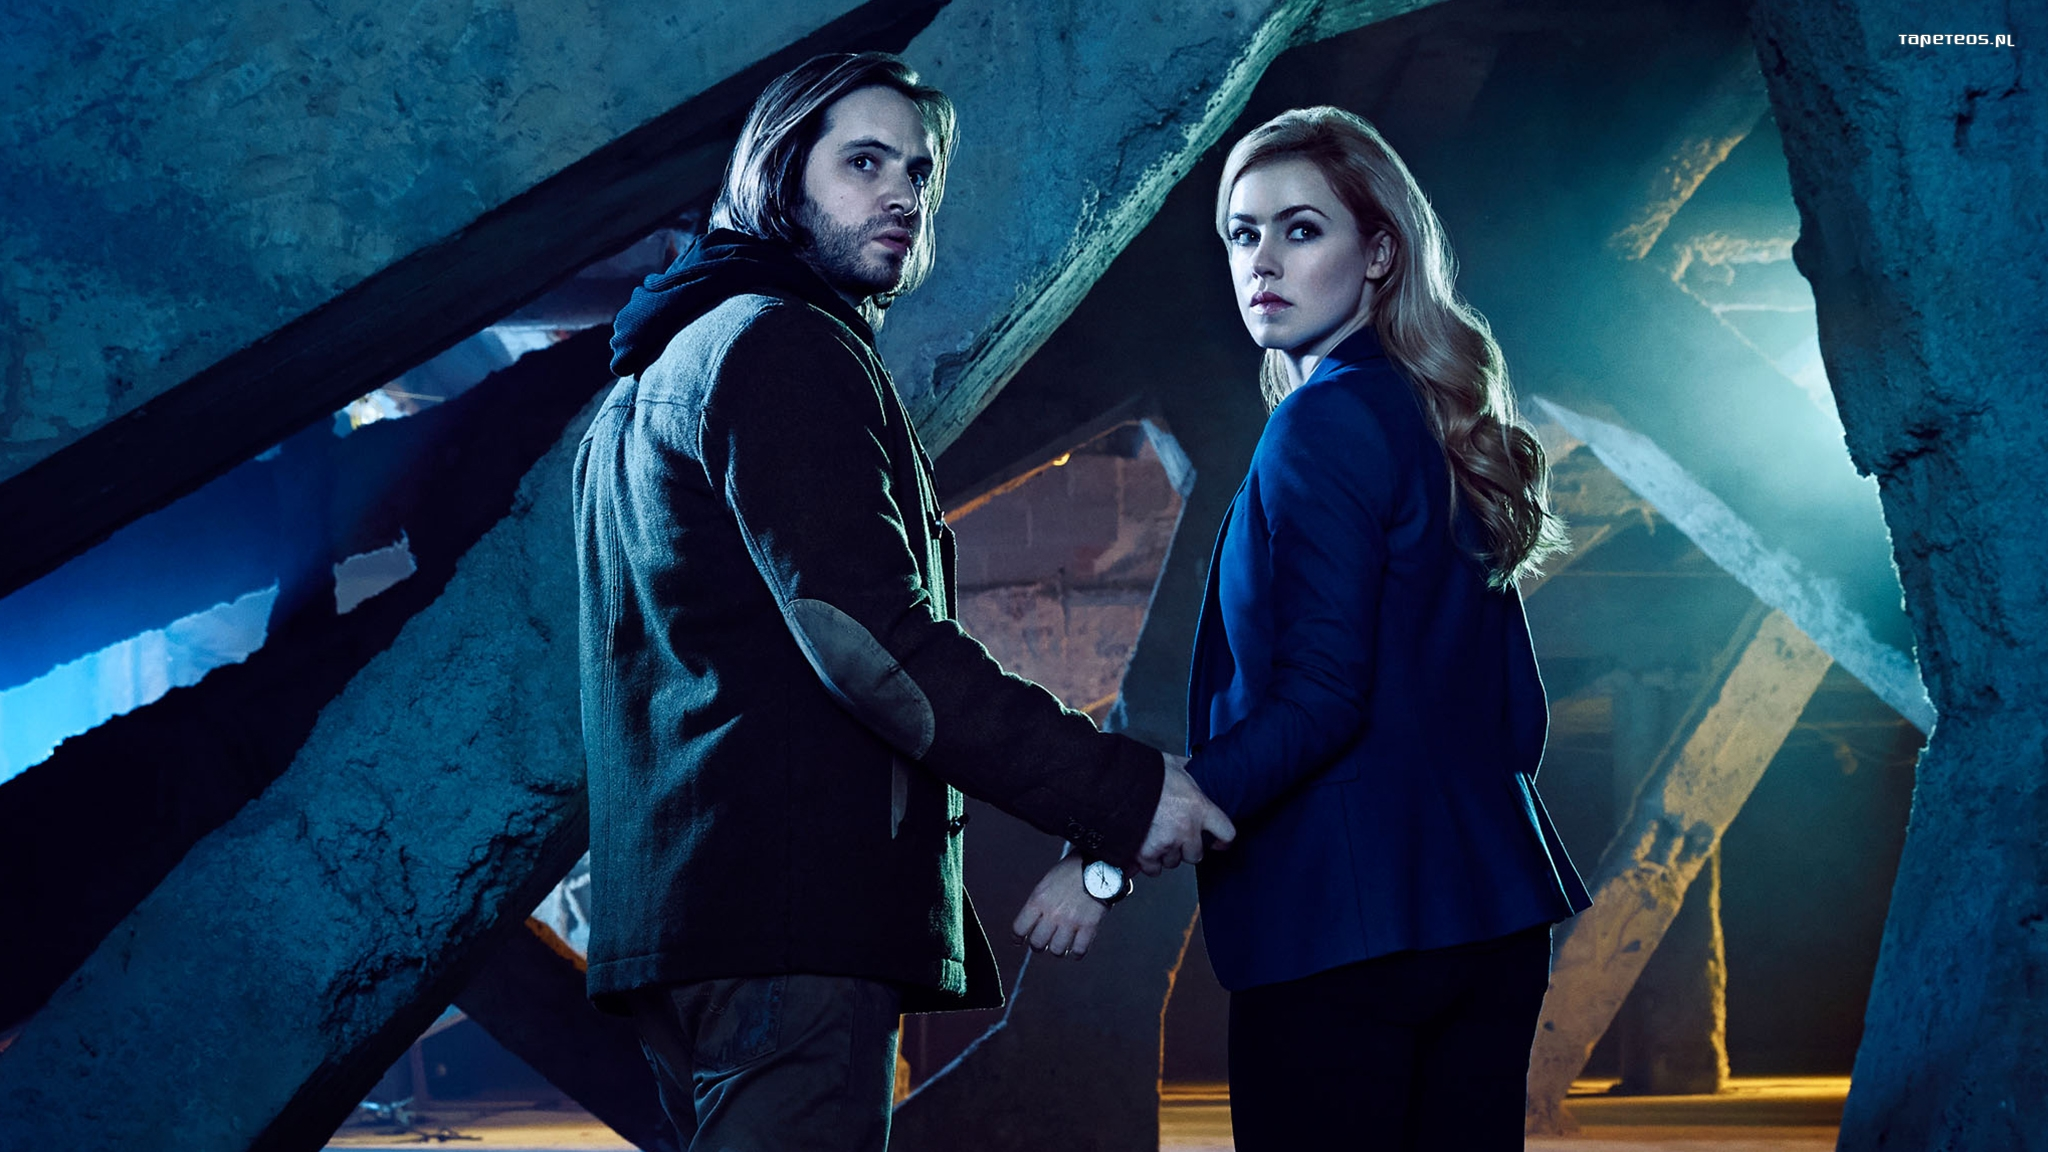 12 Monkeys 010 Aaron Stanford, James Cole, Amanda Schull, Dr Cassandra Railly